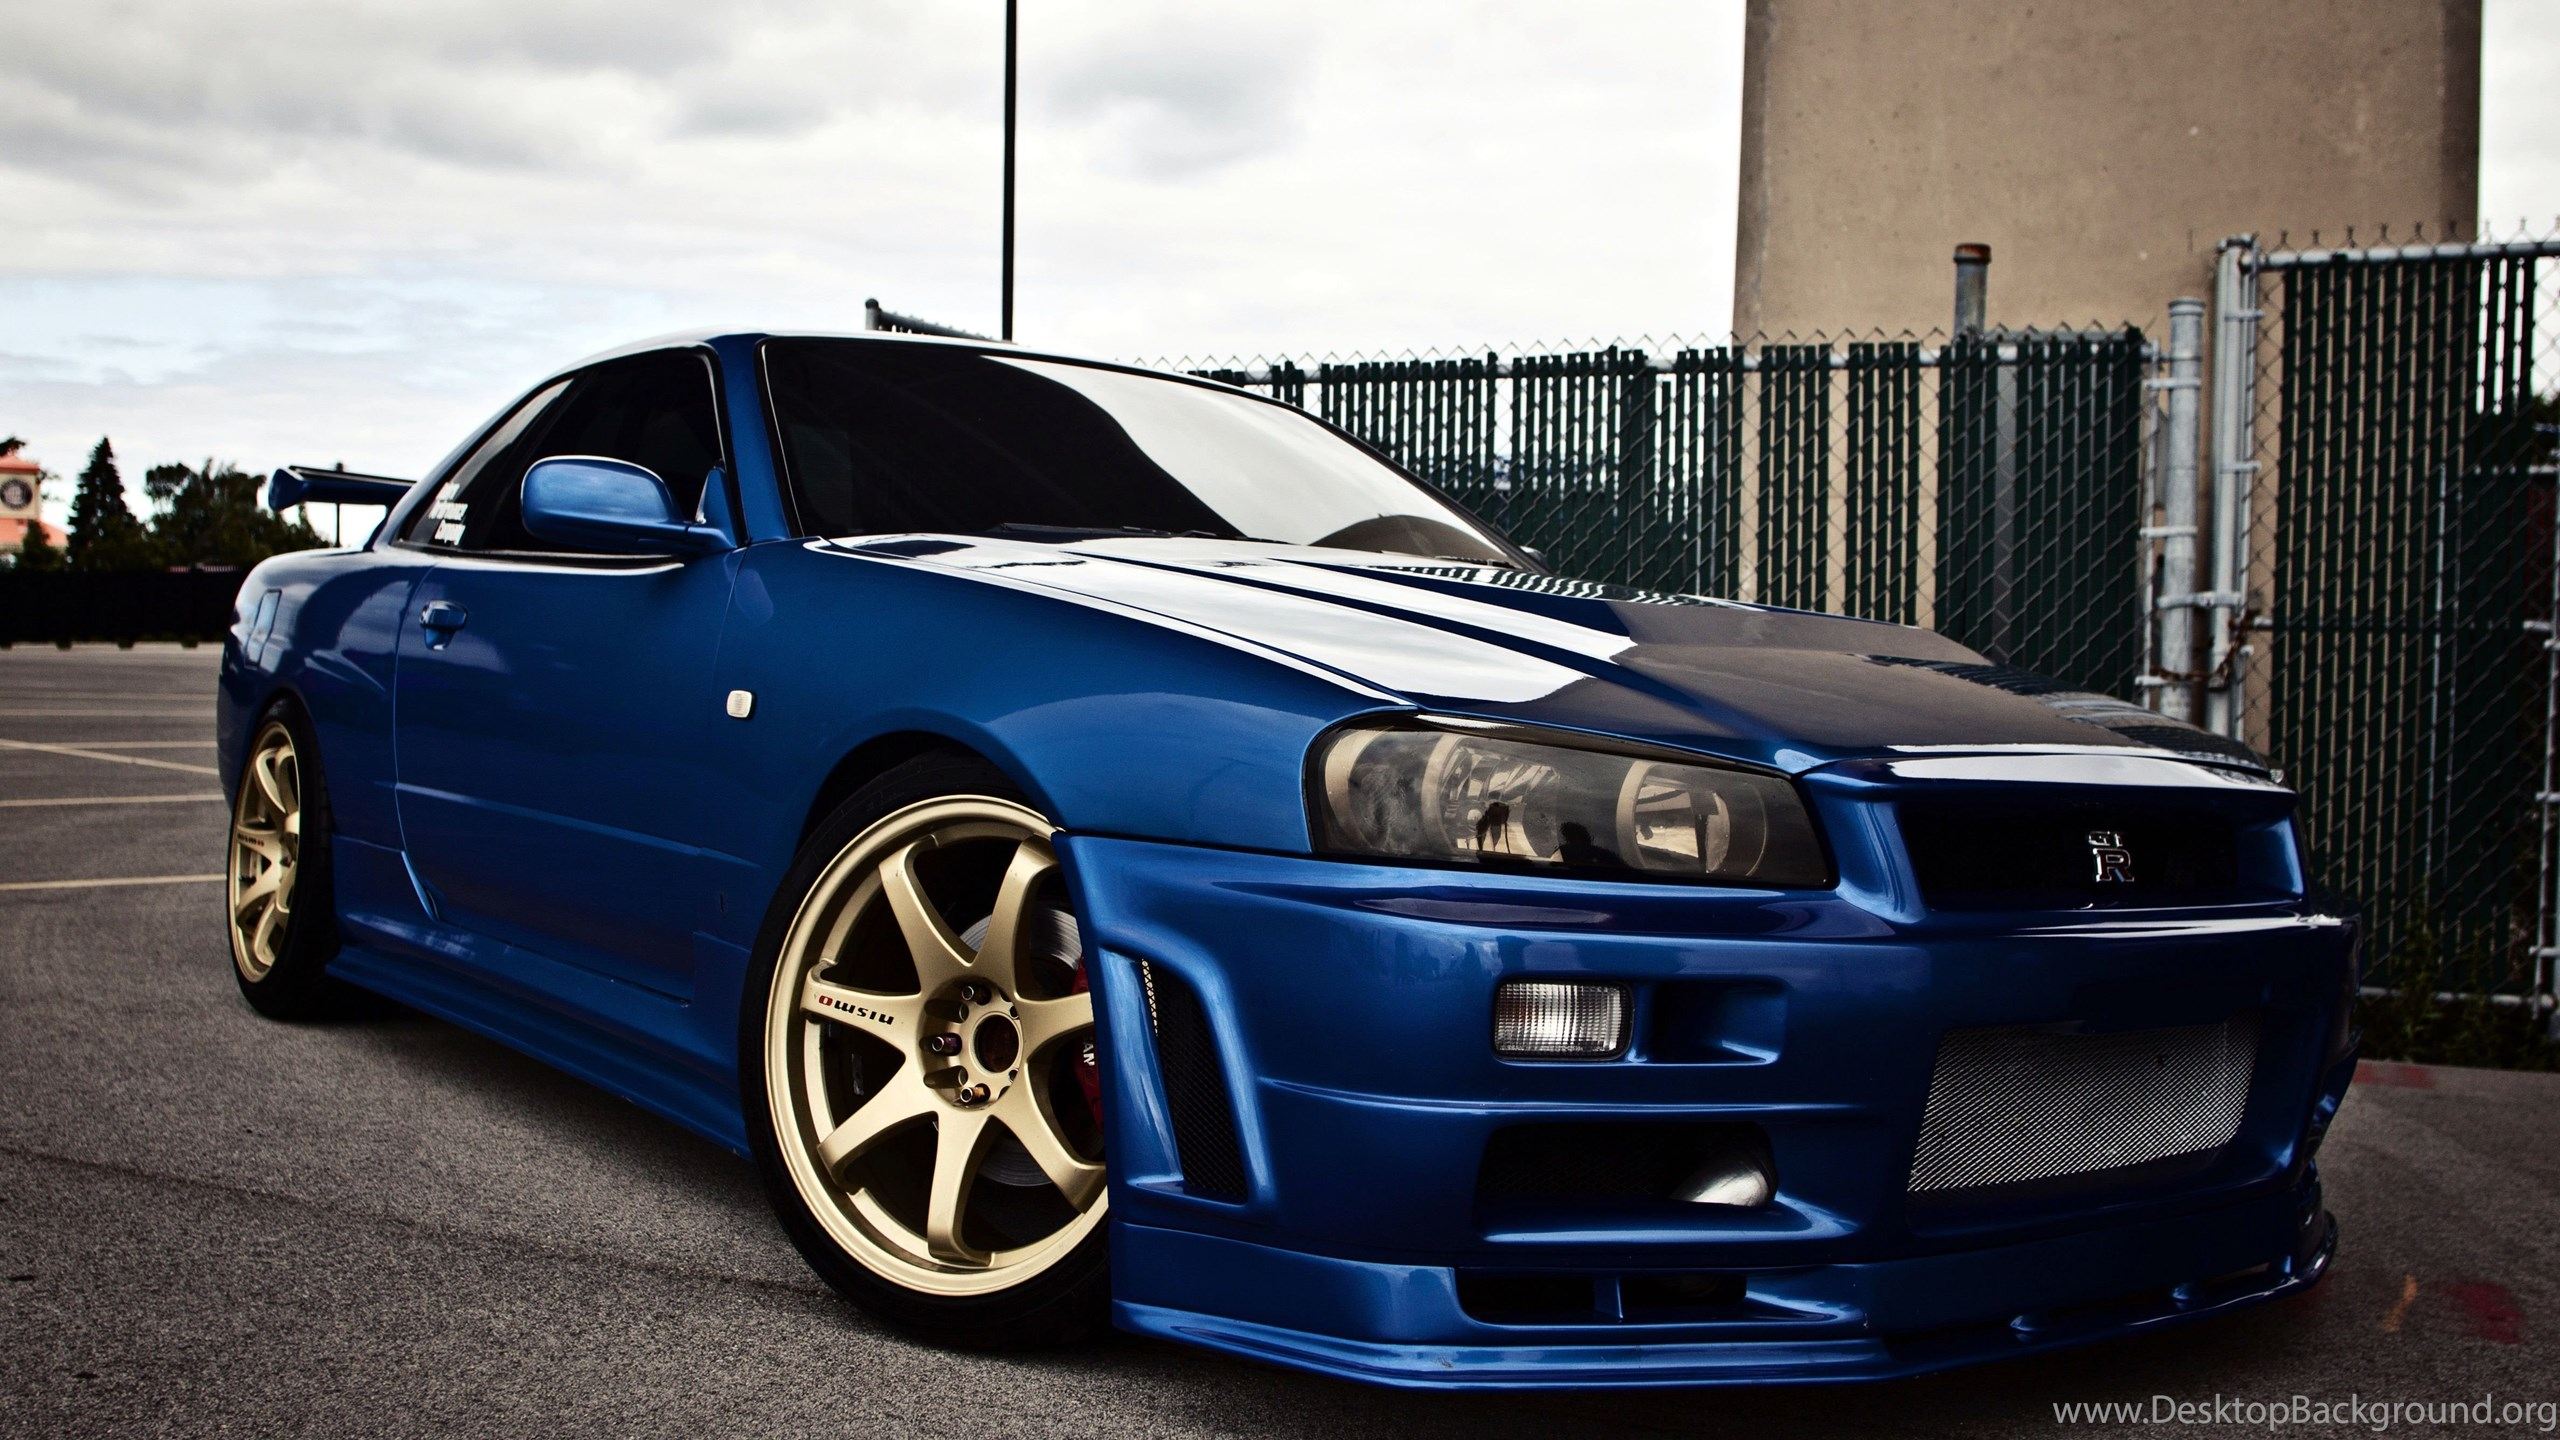 64 Nissan Skyline Hd Wallpapers Desktop Background